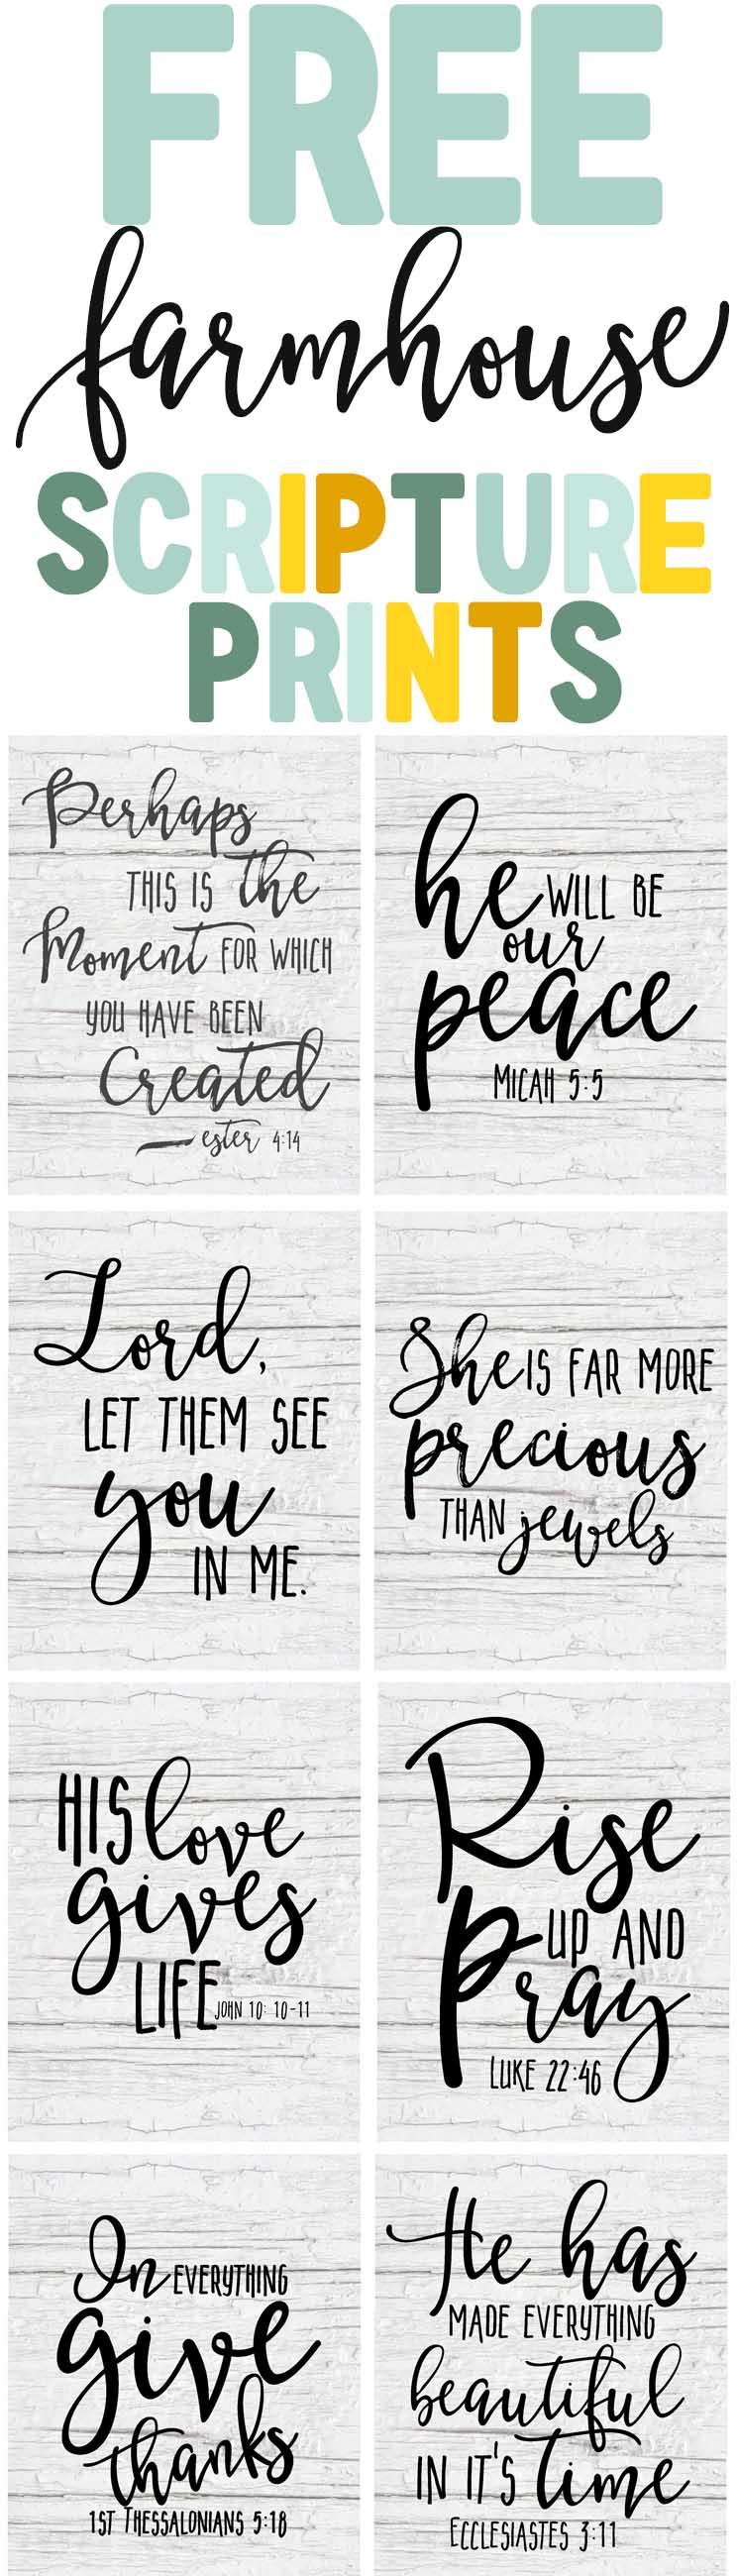 Free Farmhouse Scripture Printables - The Mountain View Cottage - Free Printable Bible Verses